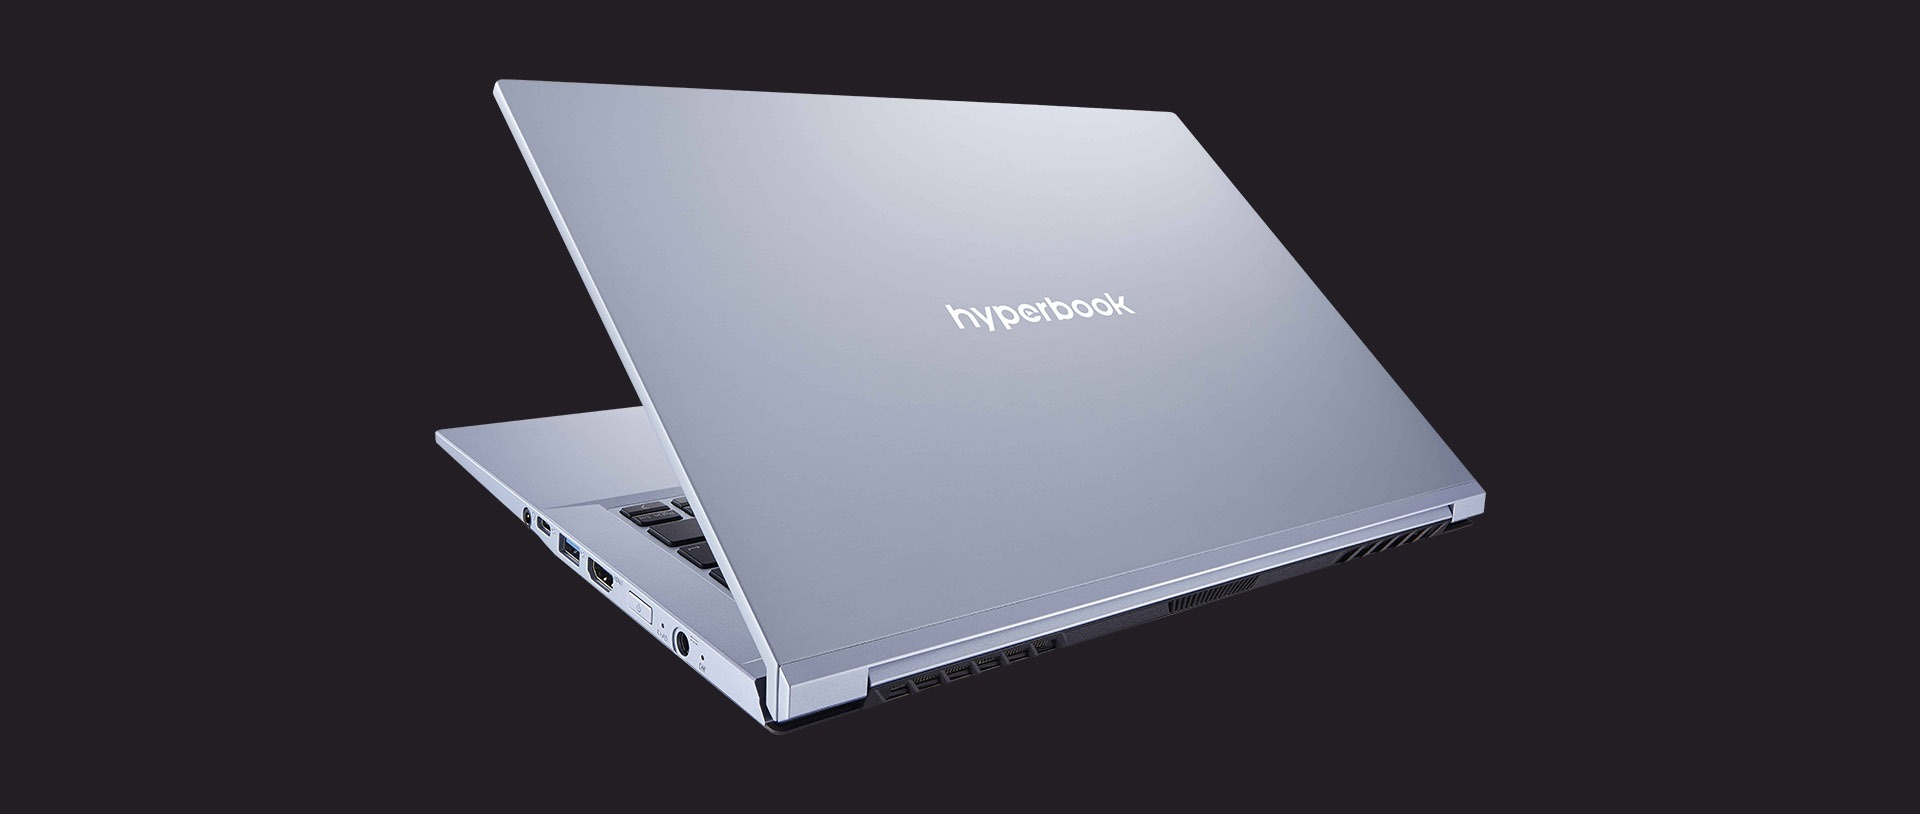 HYPERBOOK NV4 25